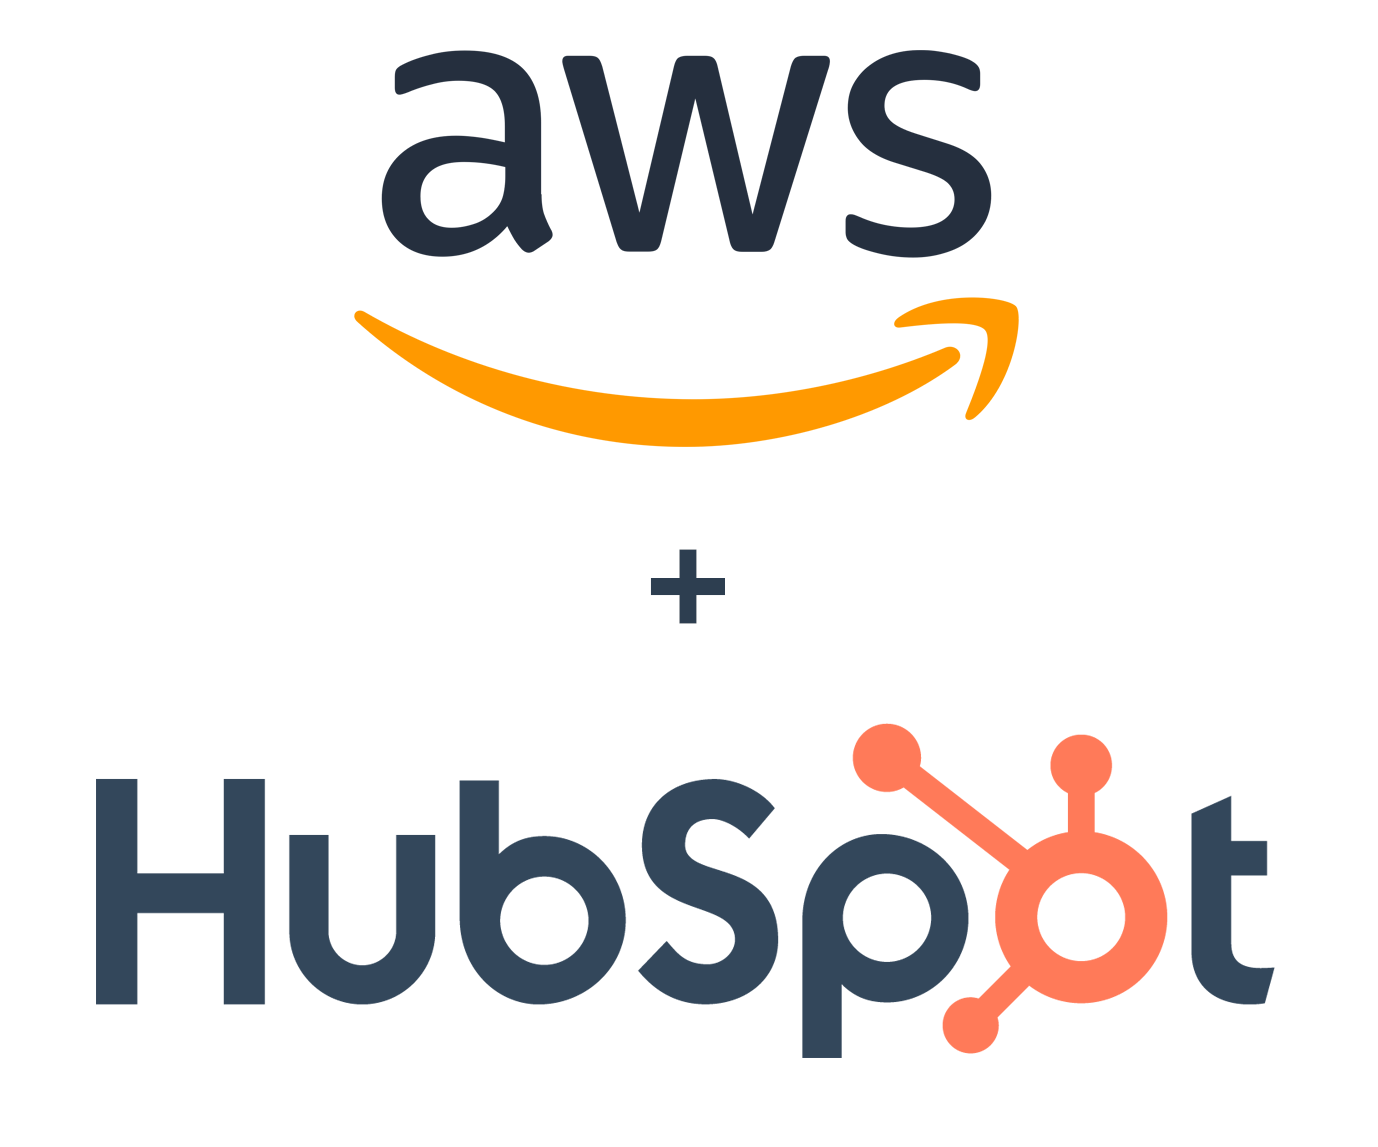 medium.com - HubSpot - Why HubSpot and Amazon Web Services Are Investing in Startups Together